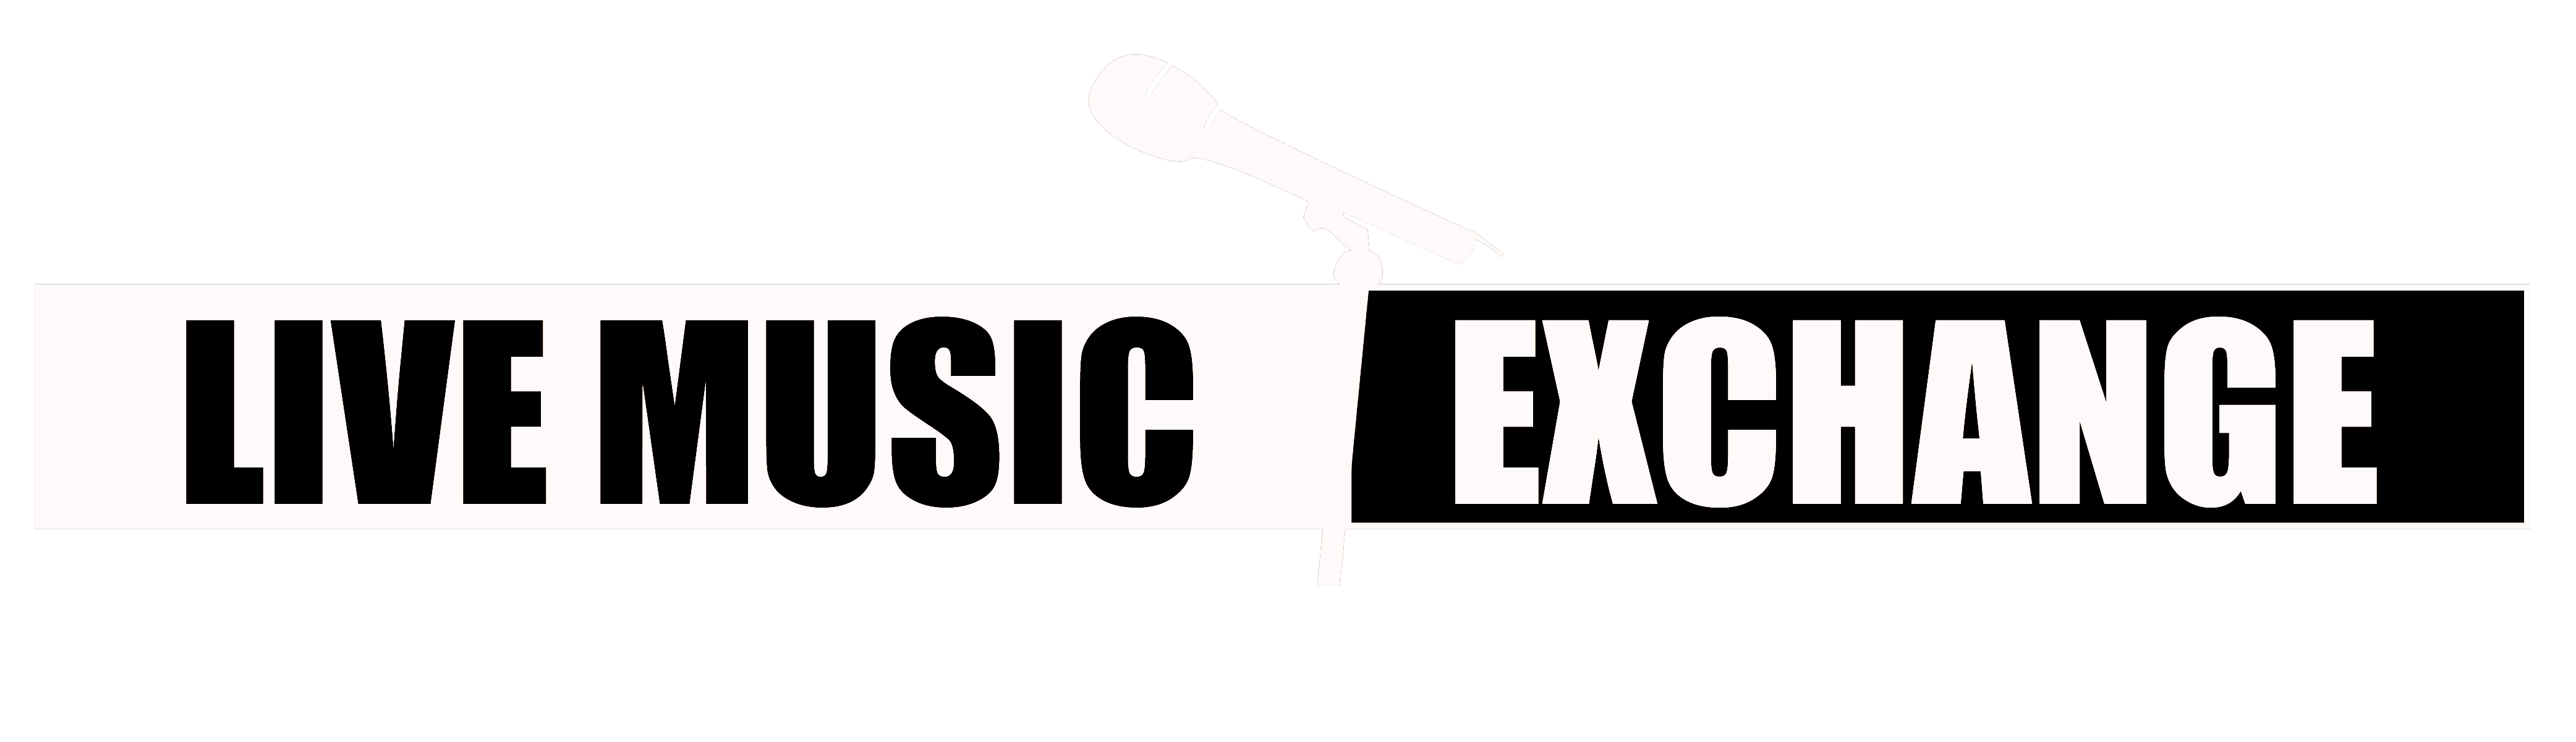 Live Music Exchange logo